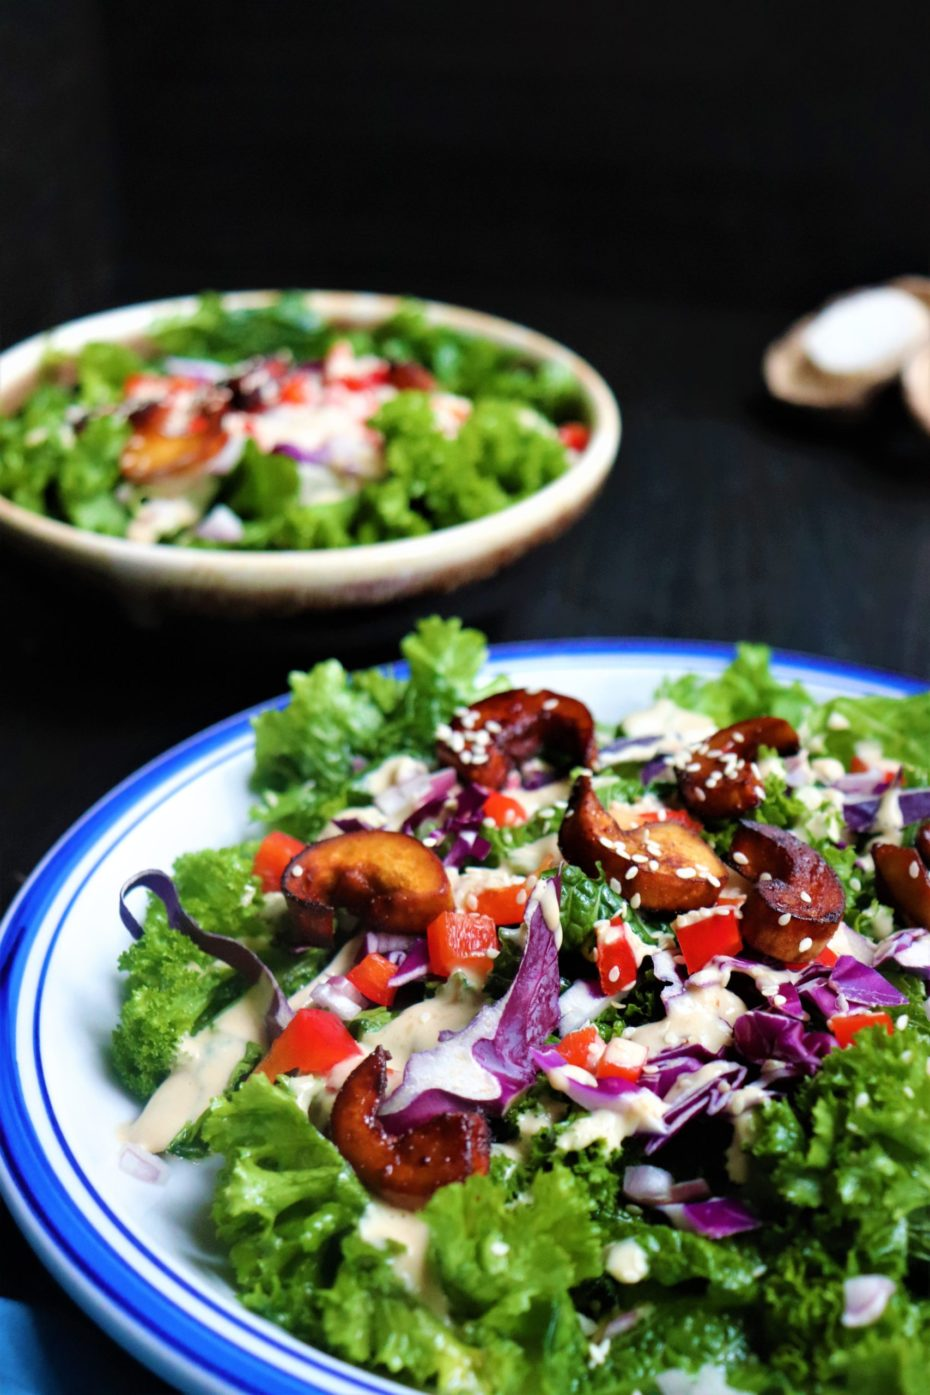 White blue plate with lots of green leaves, chopped veggies in different colors like red, purple, and brown drizzle with a light brown dressing